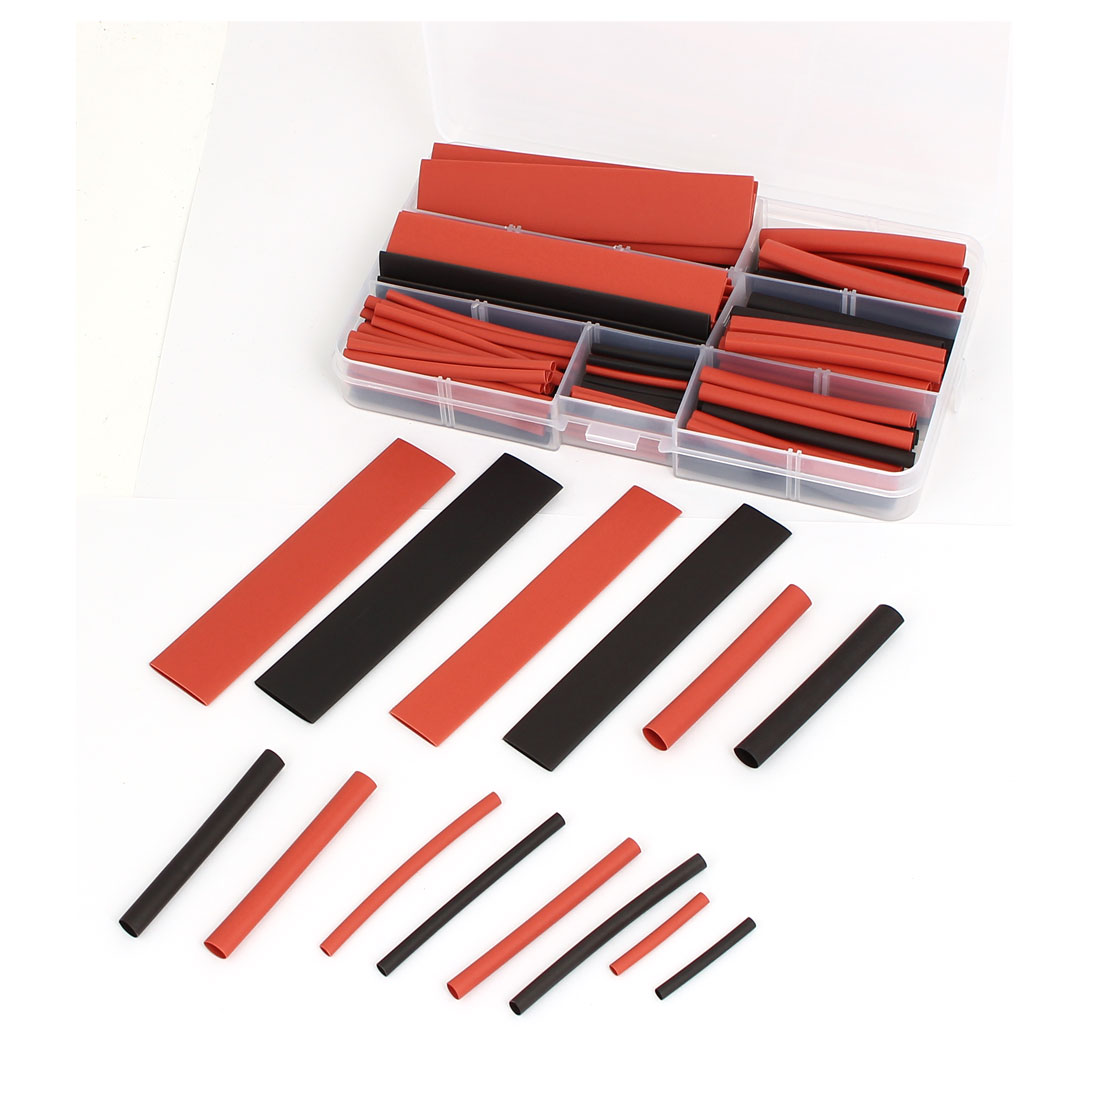 Heat Shrink Tube Wire Wrap Cable Sleeve Sets 8 Sizes Black Red w Case 150pcs